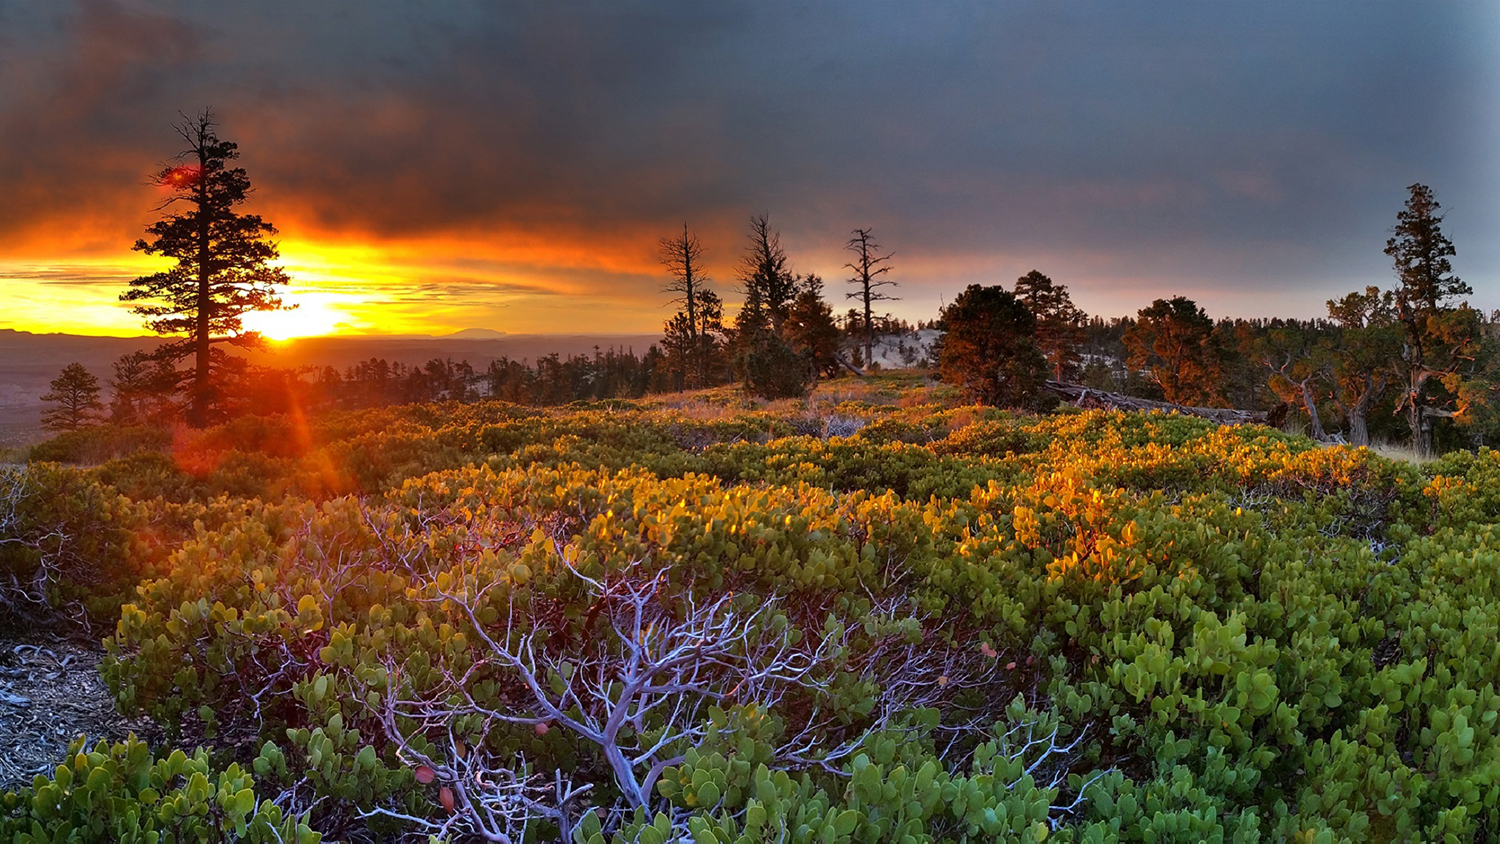 ttendance Trends Threaten Future Operations of America's State Park Systems